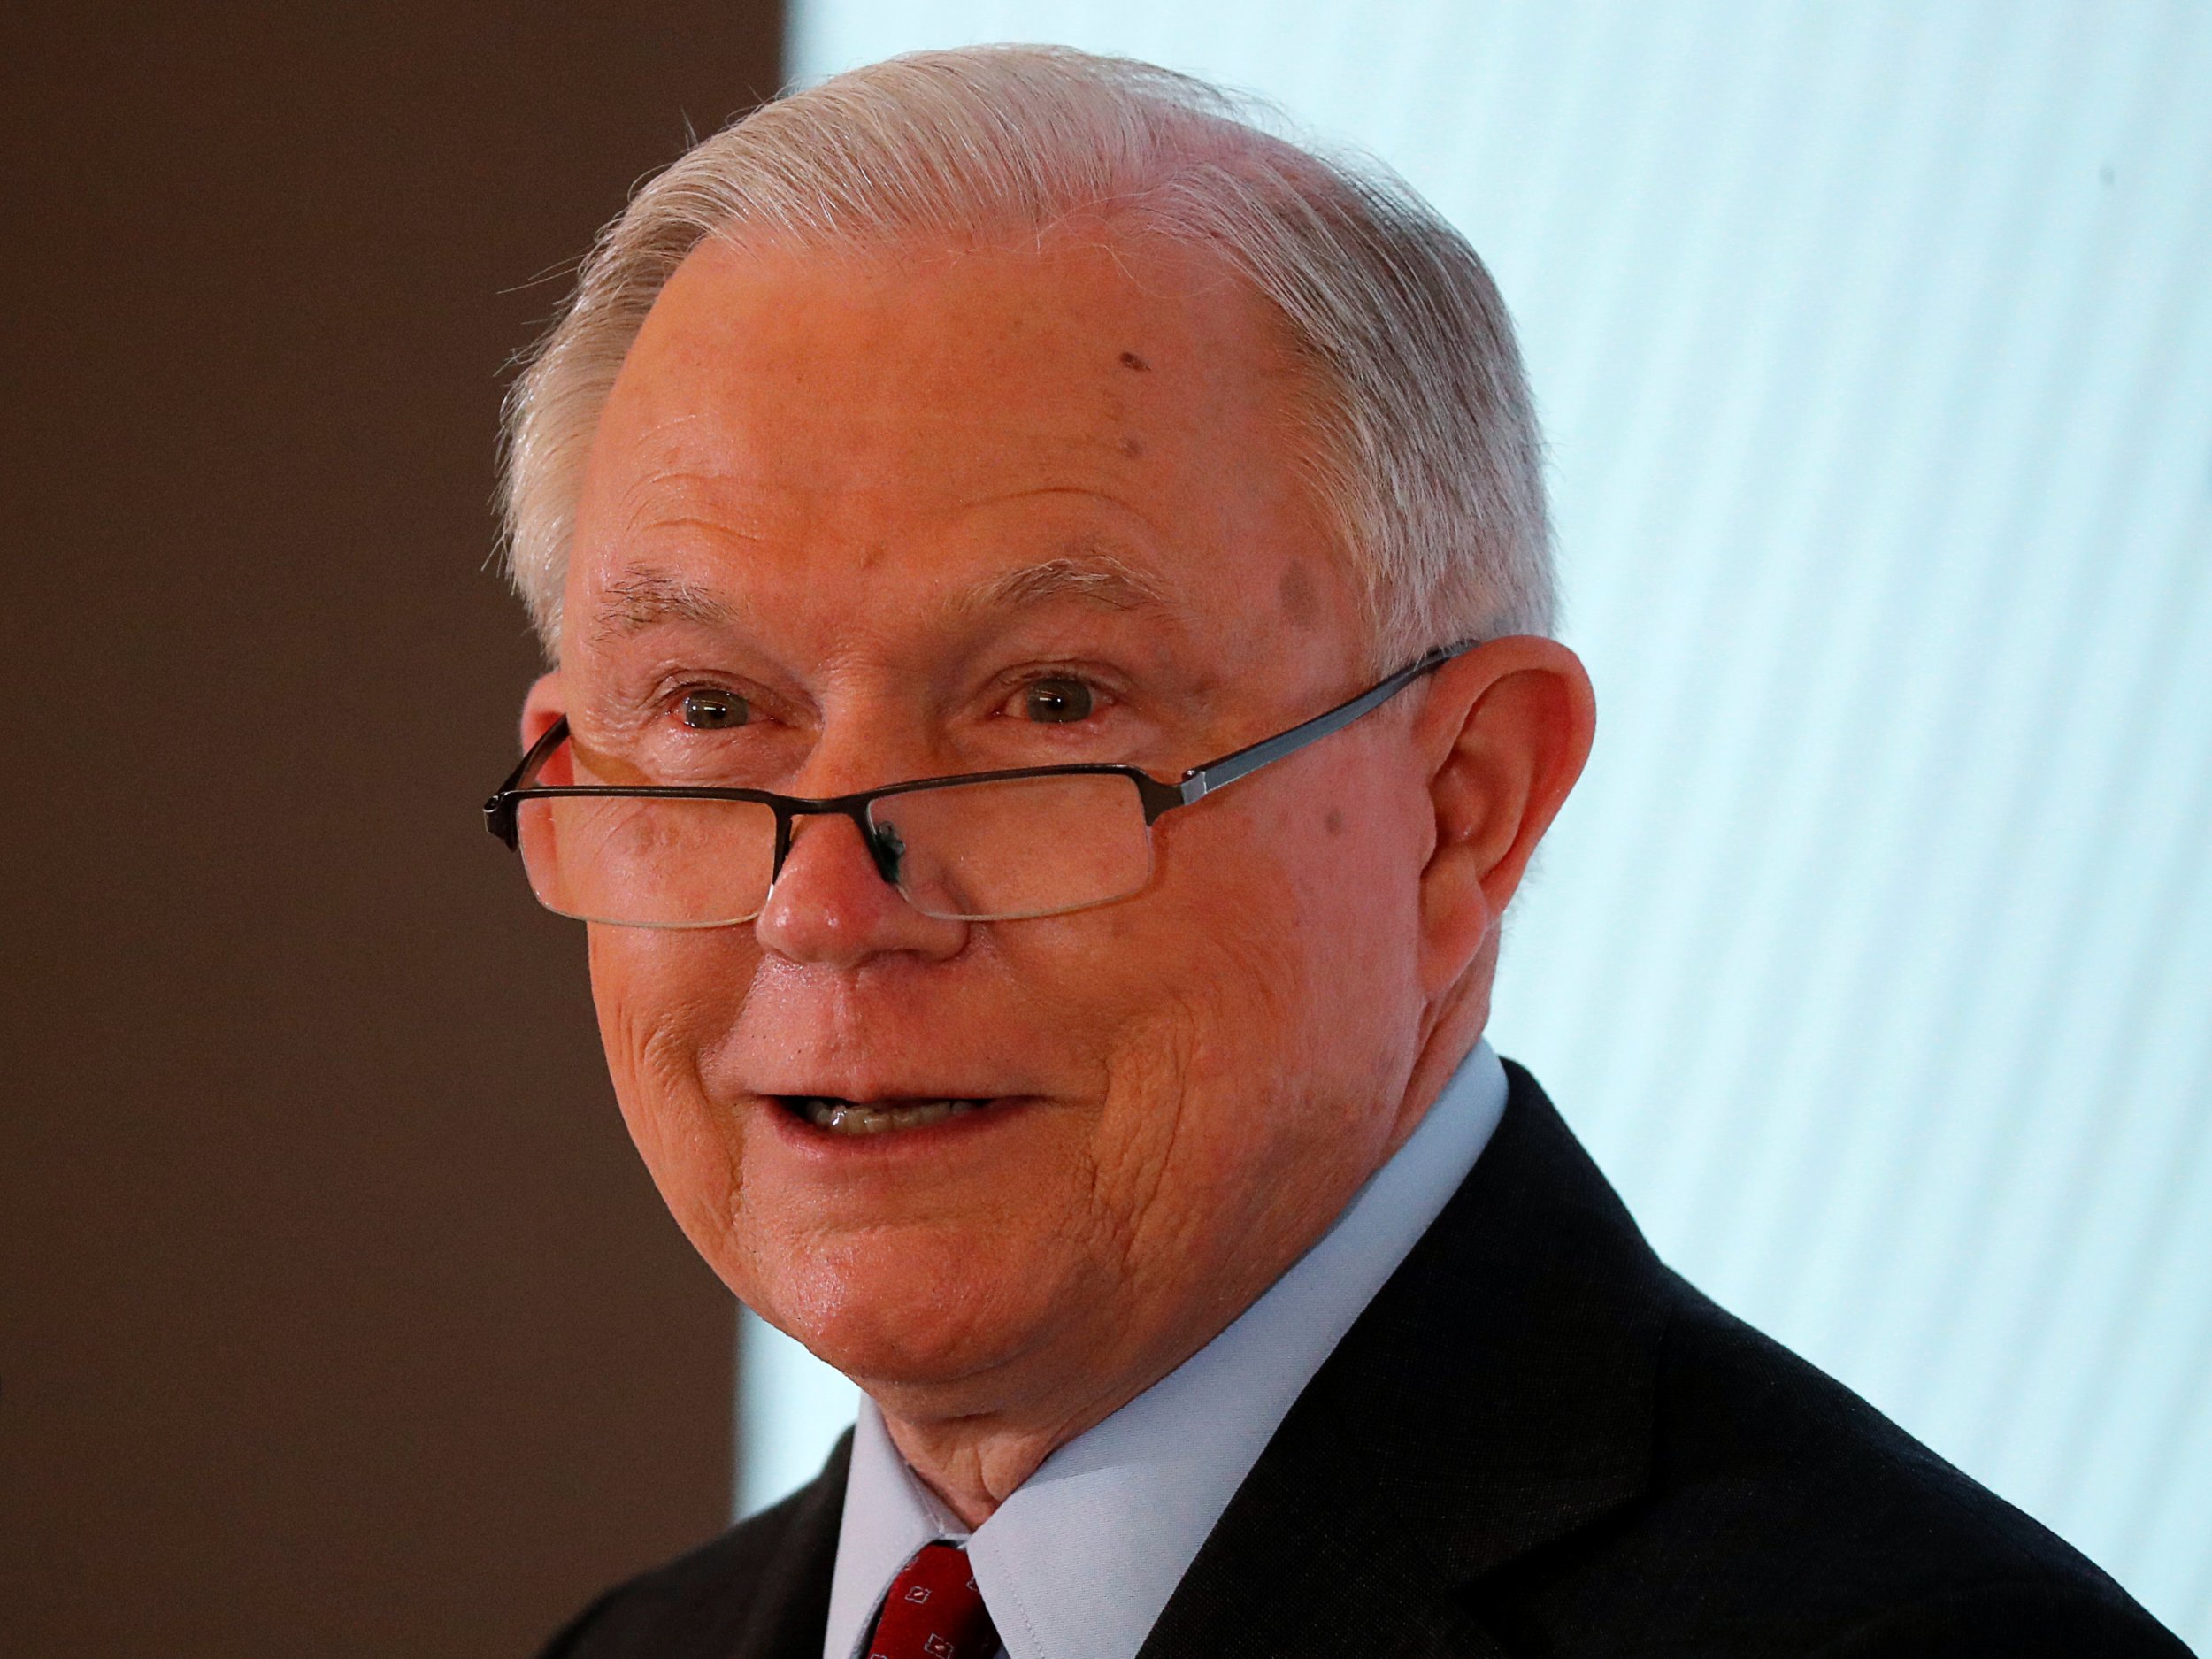 2018-06-15T195316Z_1_LYNXMPEE5E1PX_RTROPTP_4_USA-JUSTICE-SESSIONS-RELIGION